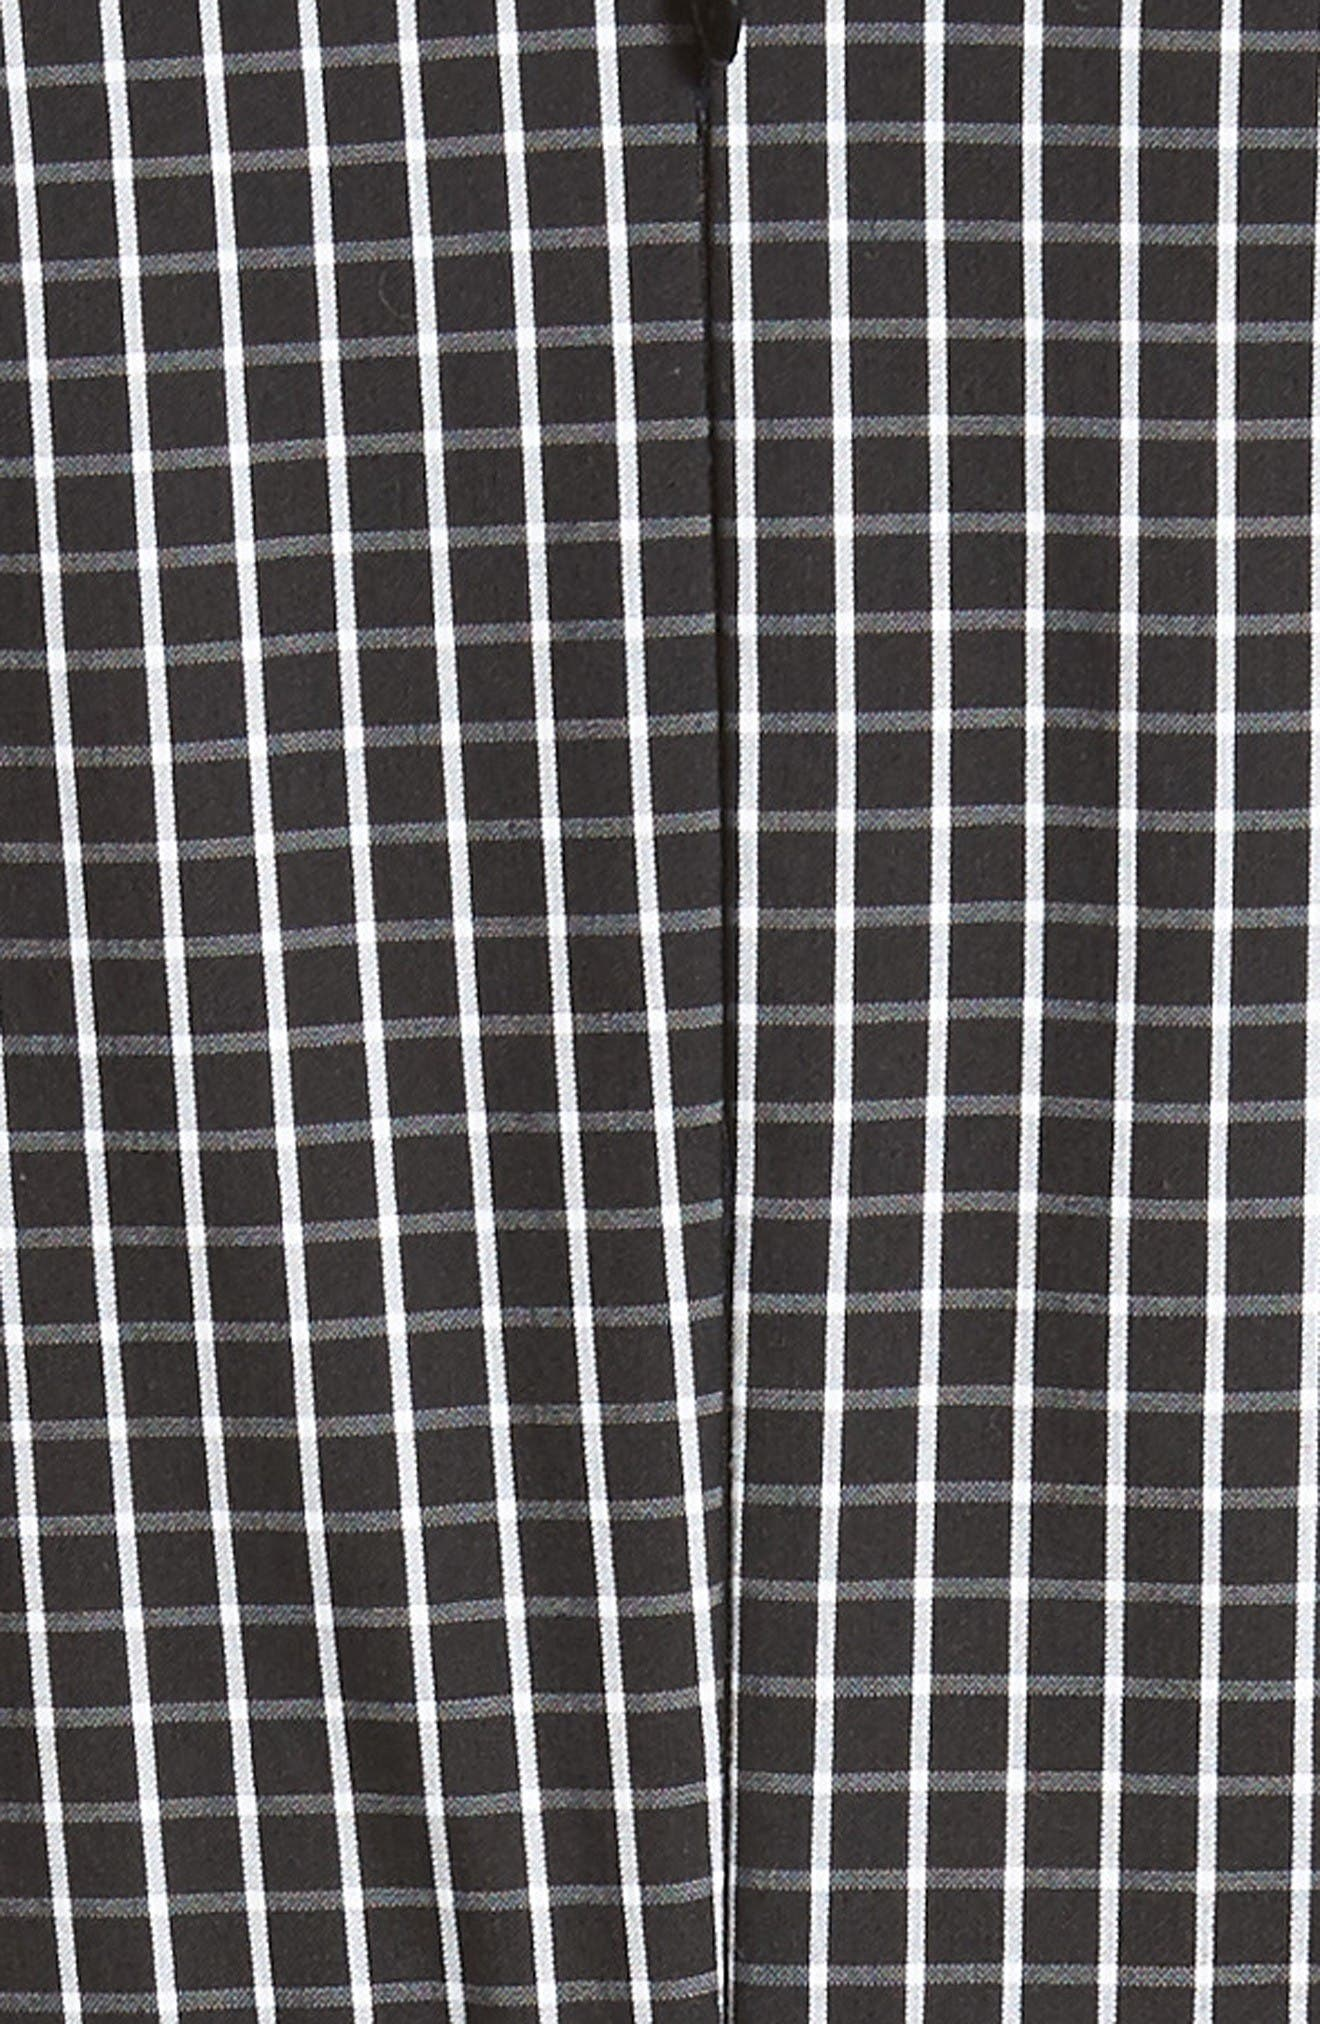 Alternate Image 3  - Michael Kors Windowpane Stretch Cotton Poplin Dress